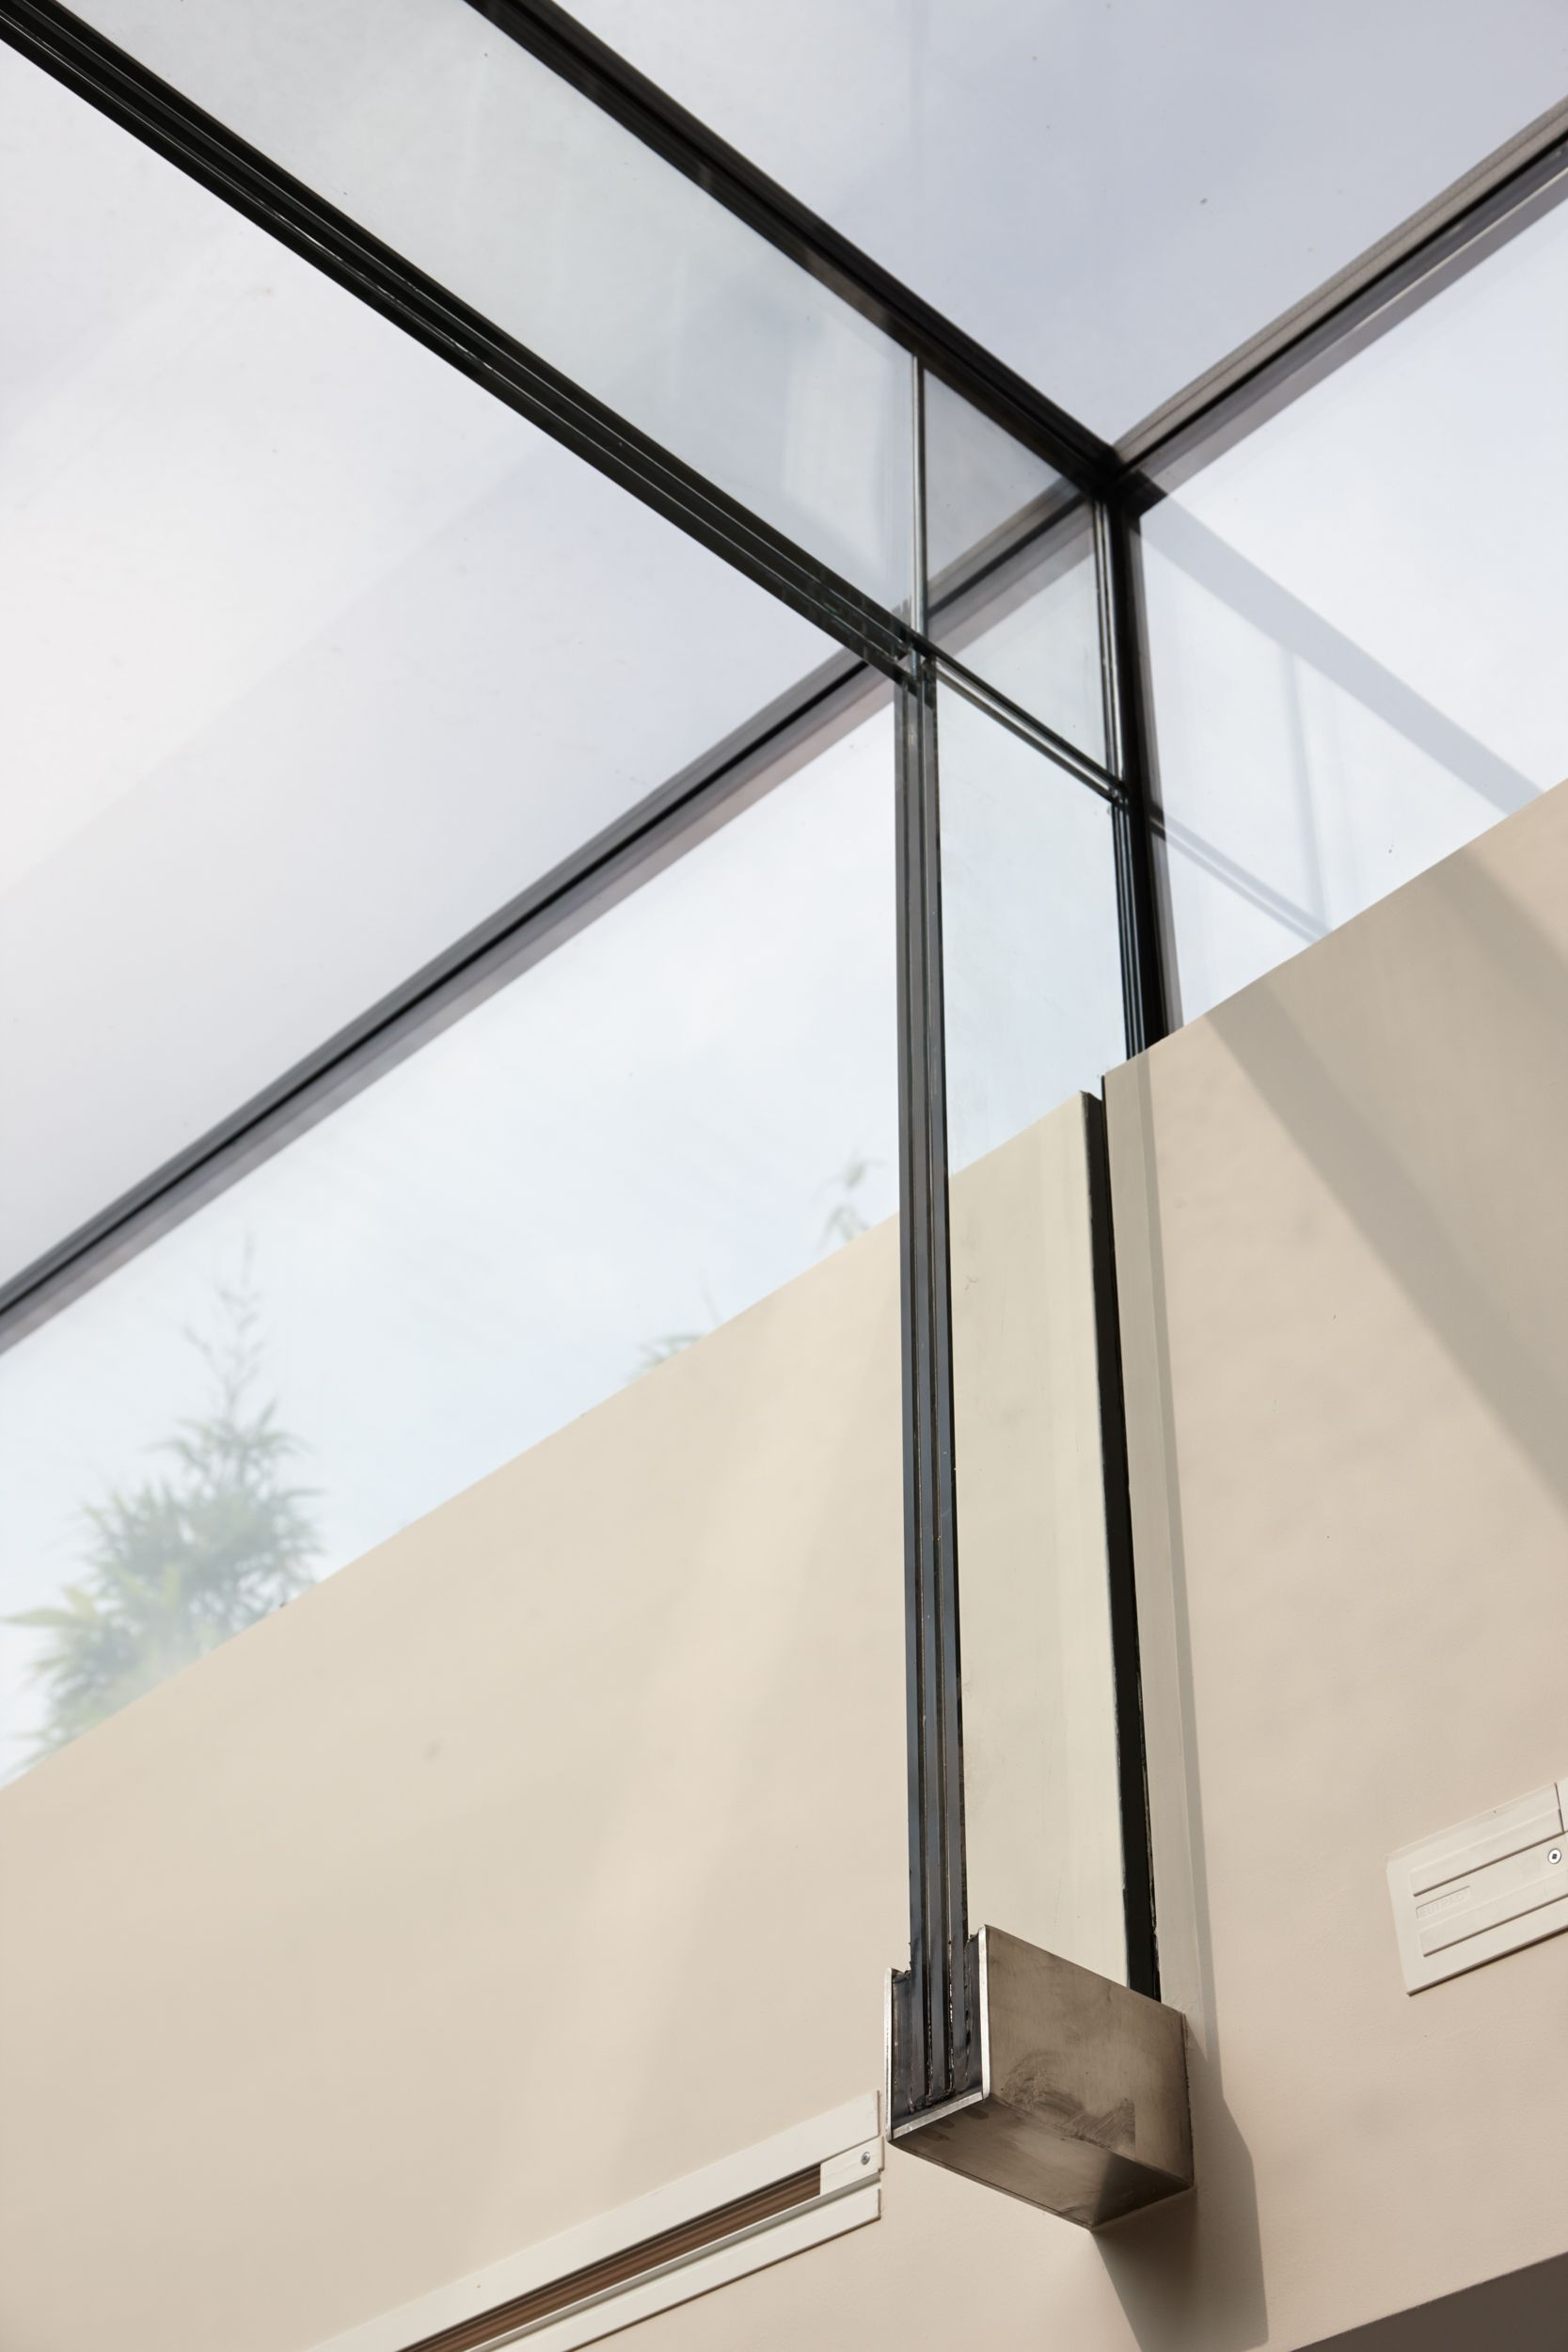 boundary metal - glass canopies and suspended ceilings - 15